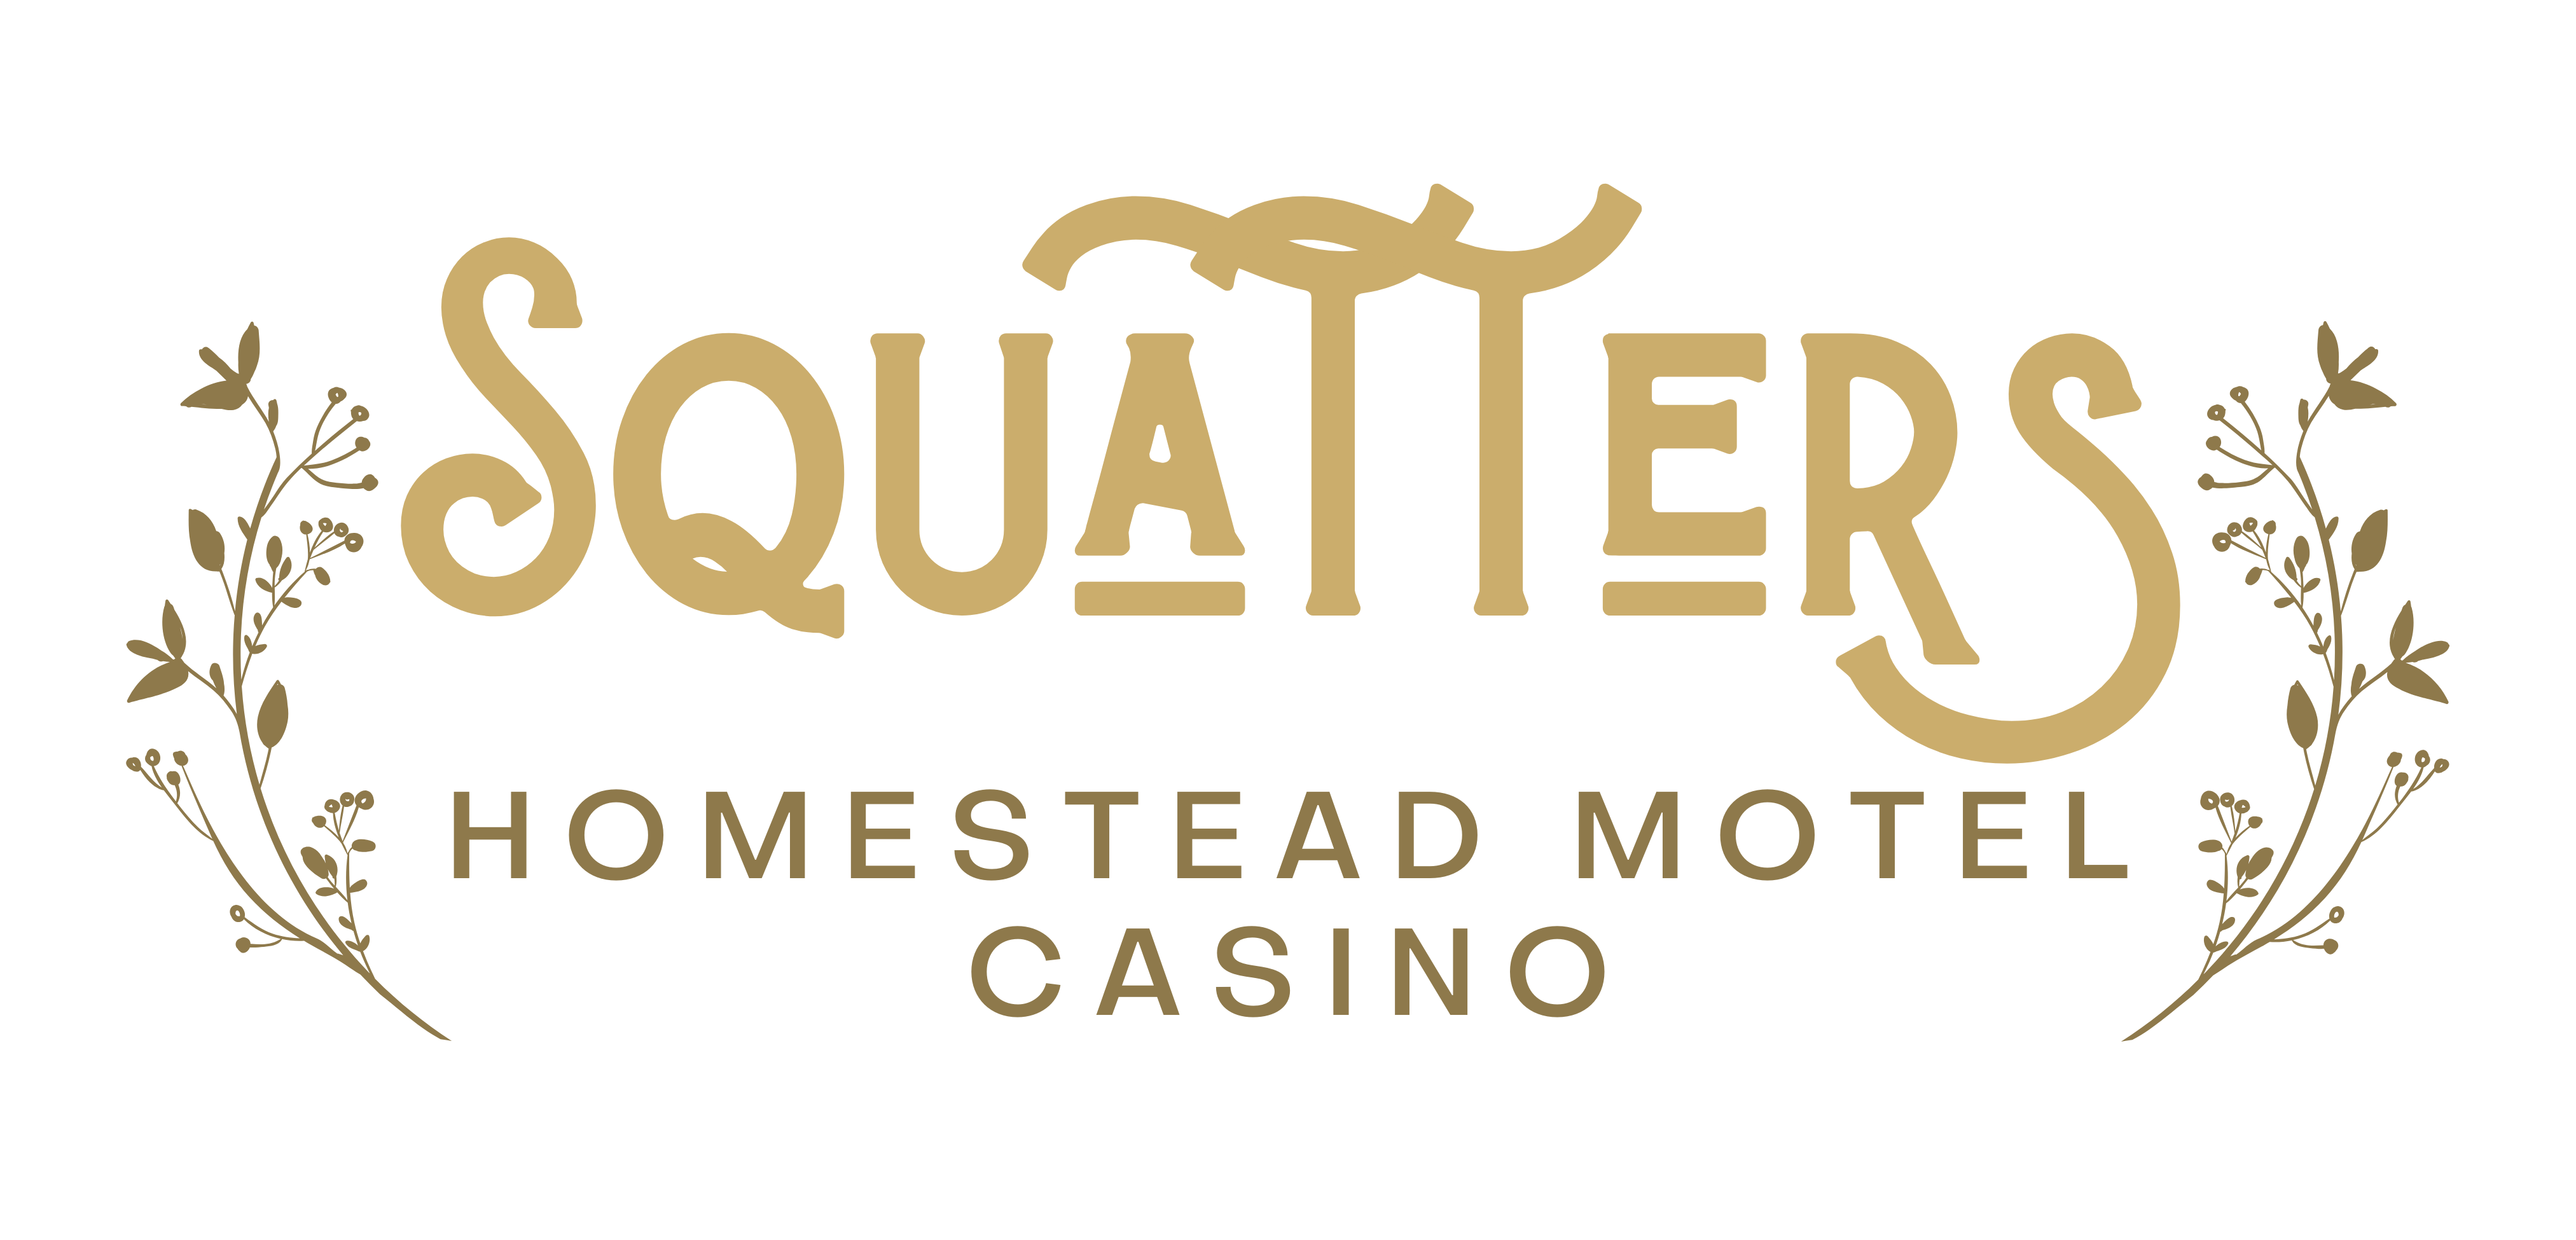 Squatters Homestead Motel Casino